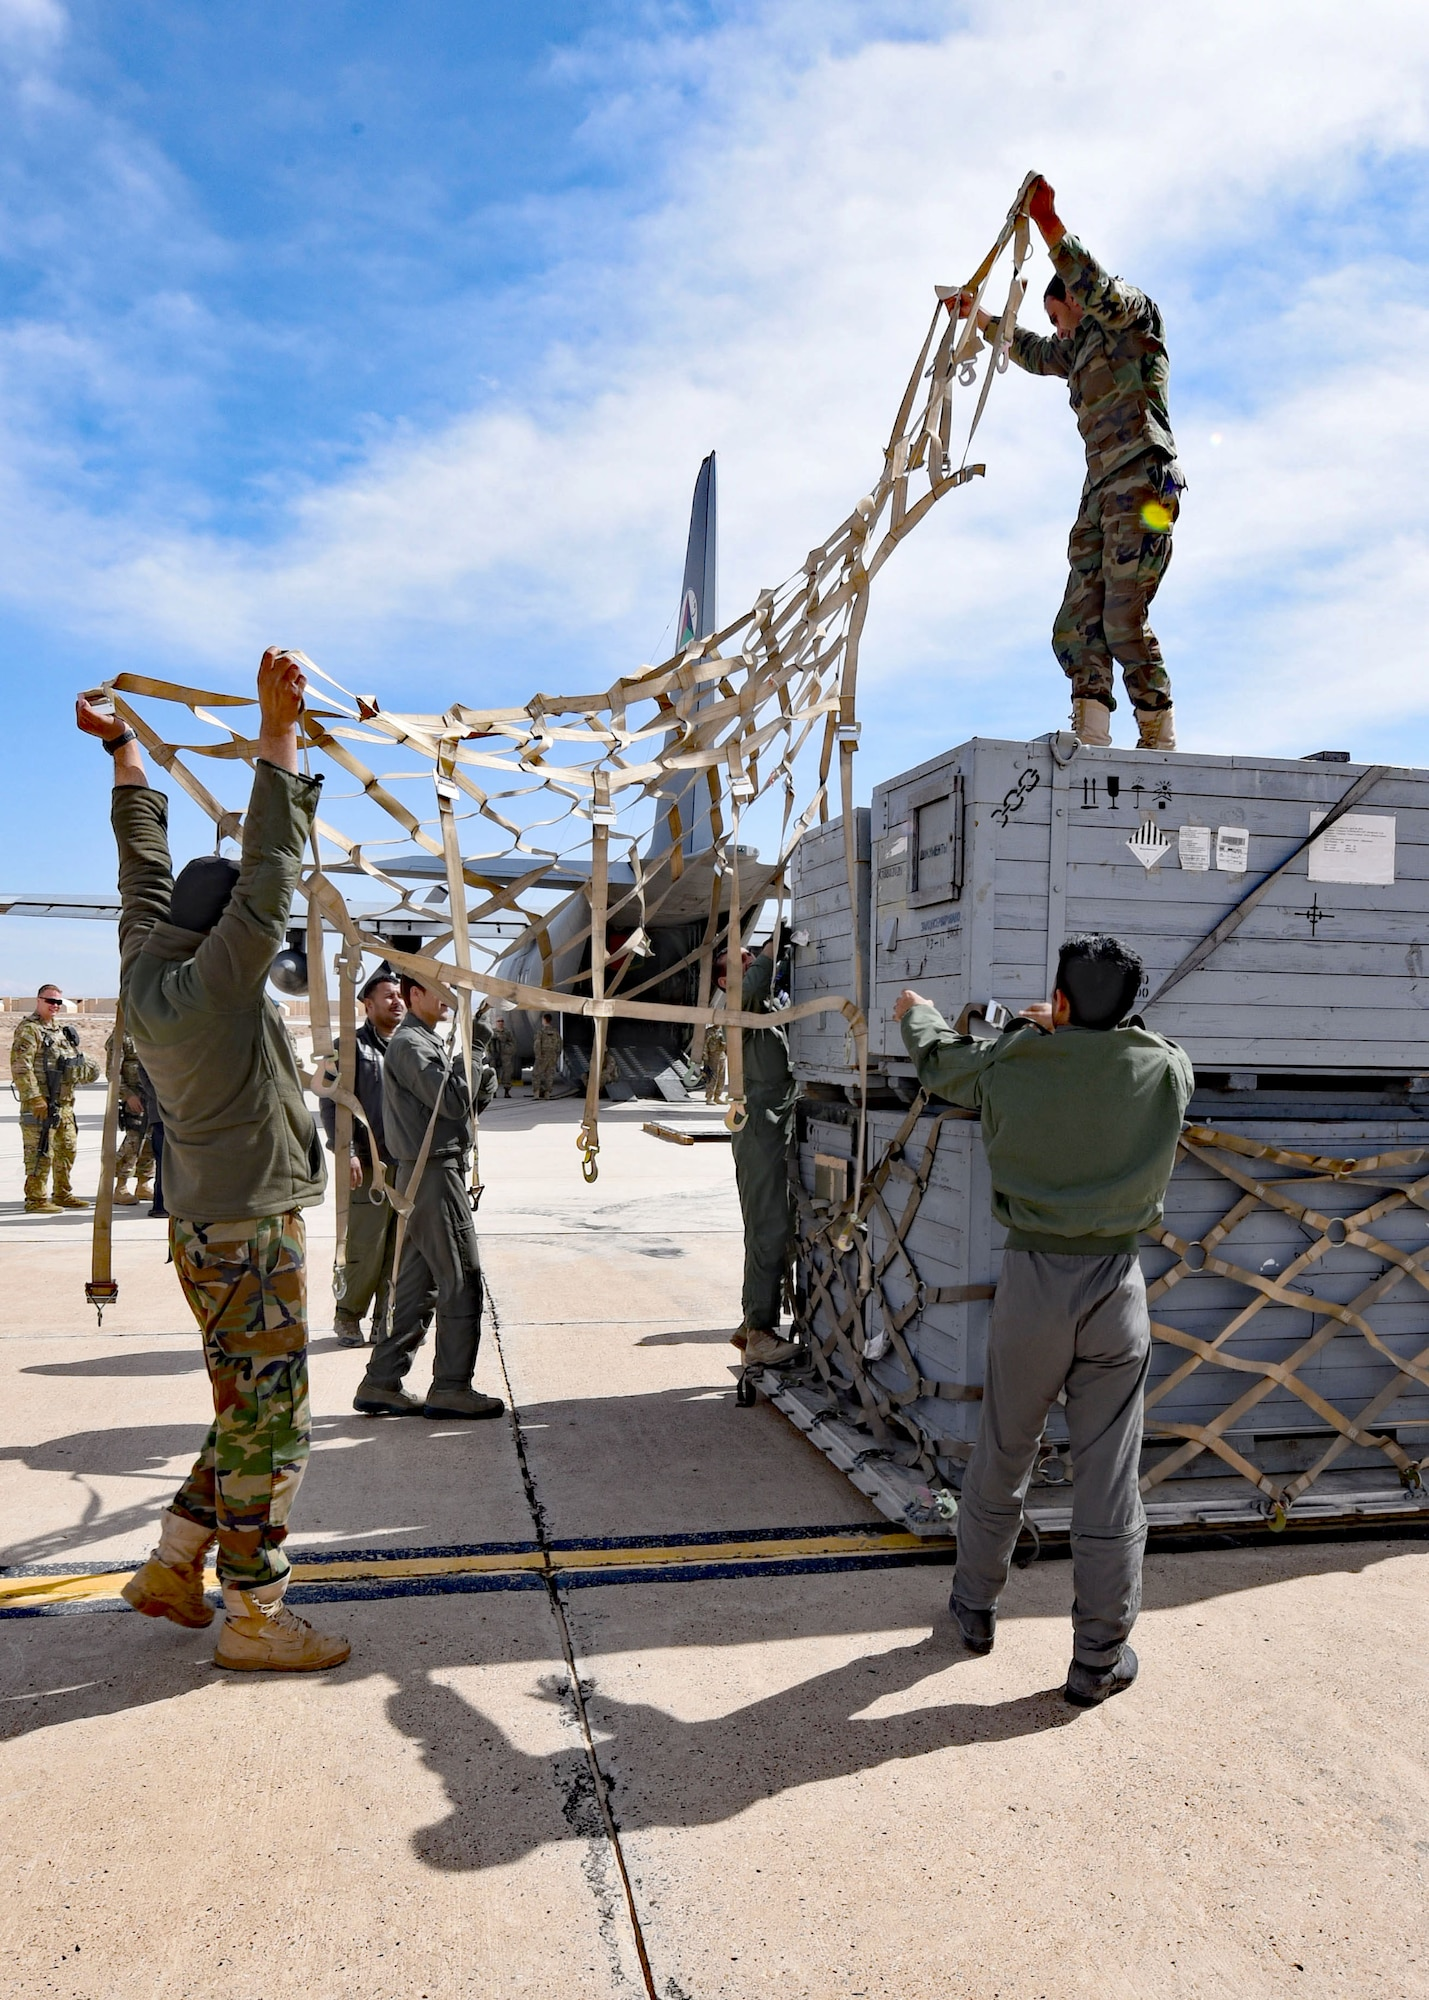 Afghan Air Force C-130H aircrew and maintainers palletize cargo at Shindand Air Wing, Herat, Afghanistan, for transportation to Kabul Air Wing, March 1, 2017. The cargo consisted of 9,000 pounds of Mi-17 parts to be reused for maintenance overhaul. (U.S. Air Force photo by Tech. Sgt. Veronica Pierce)